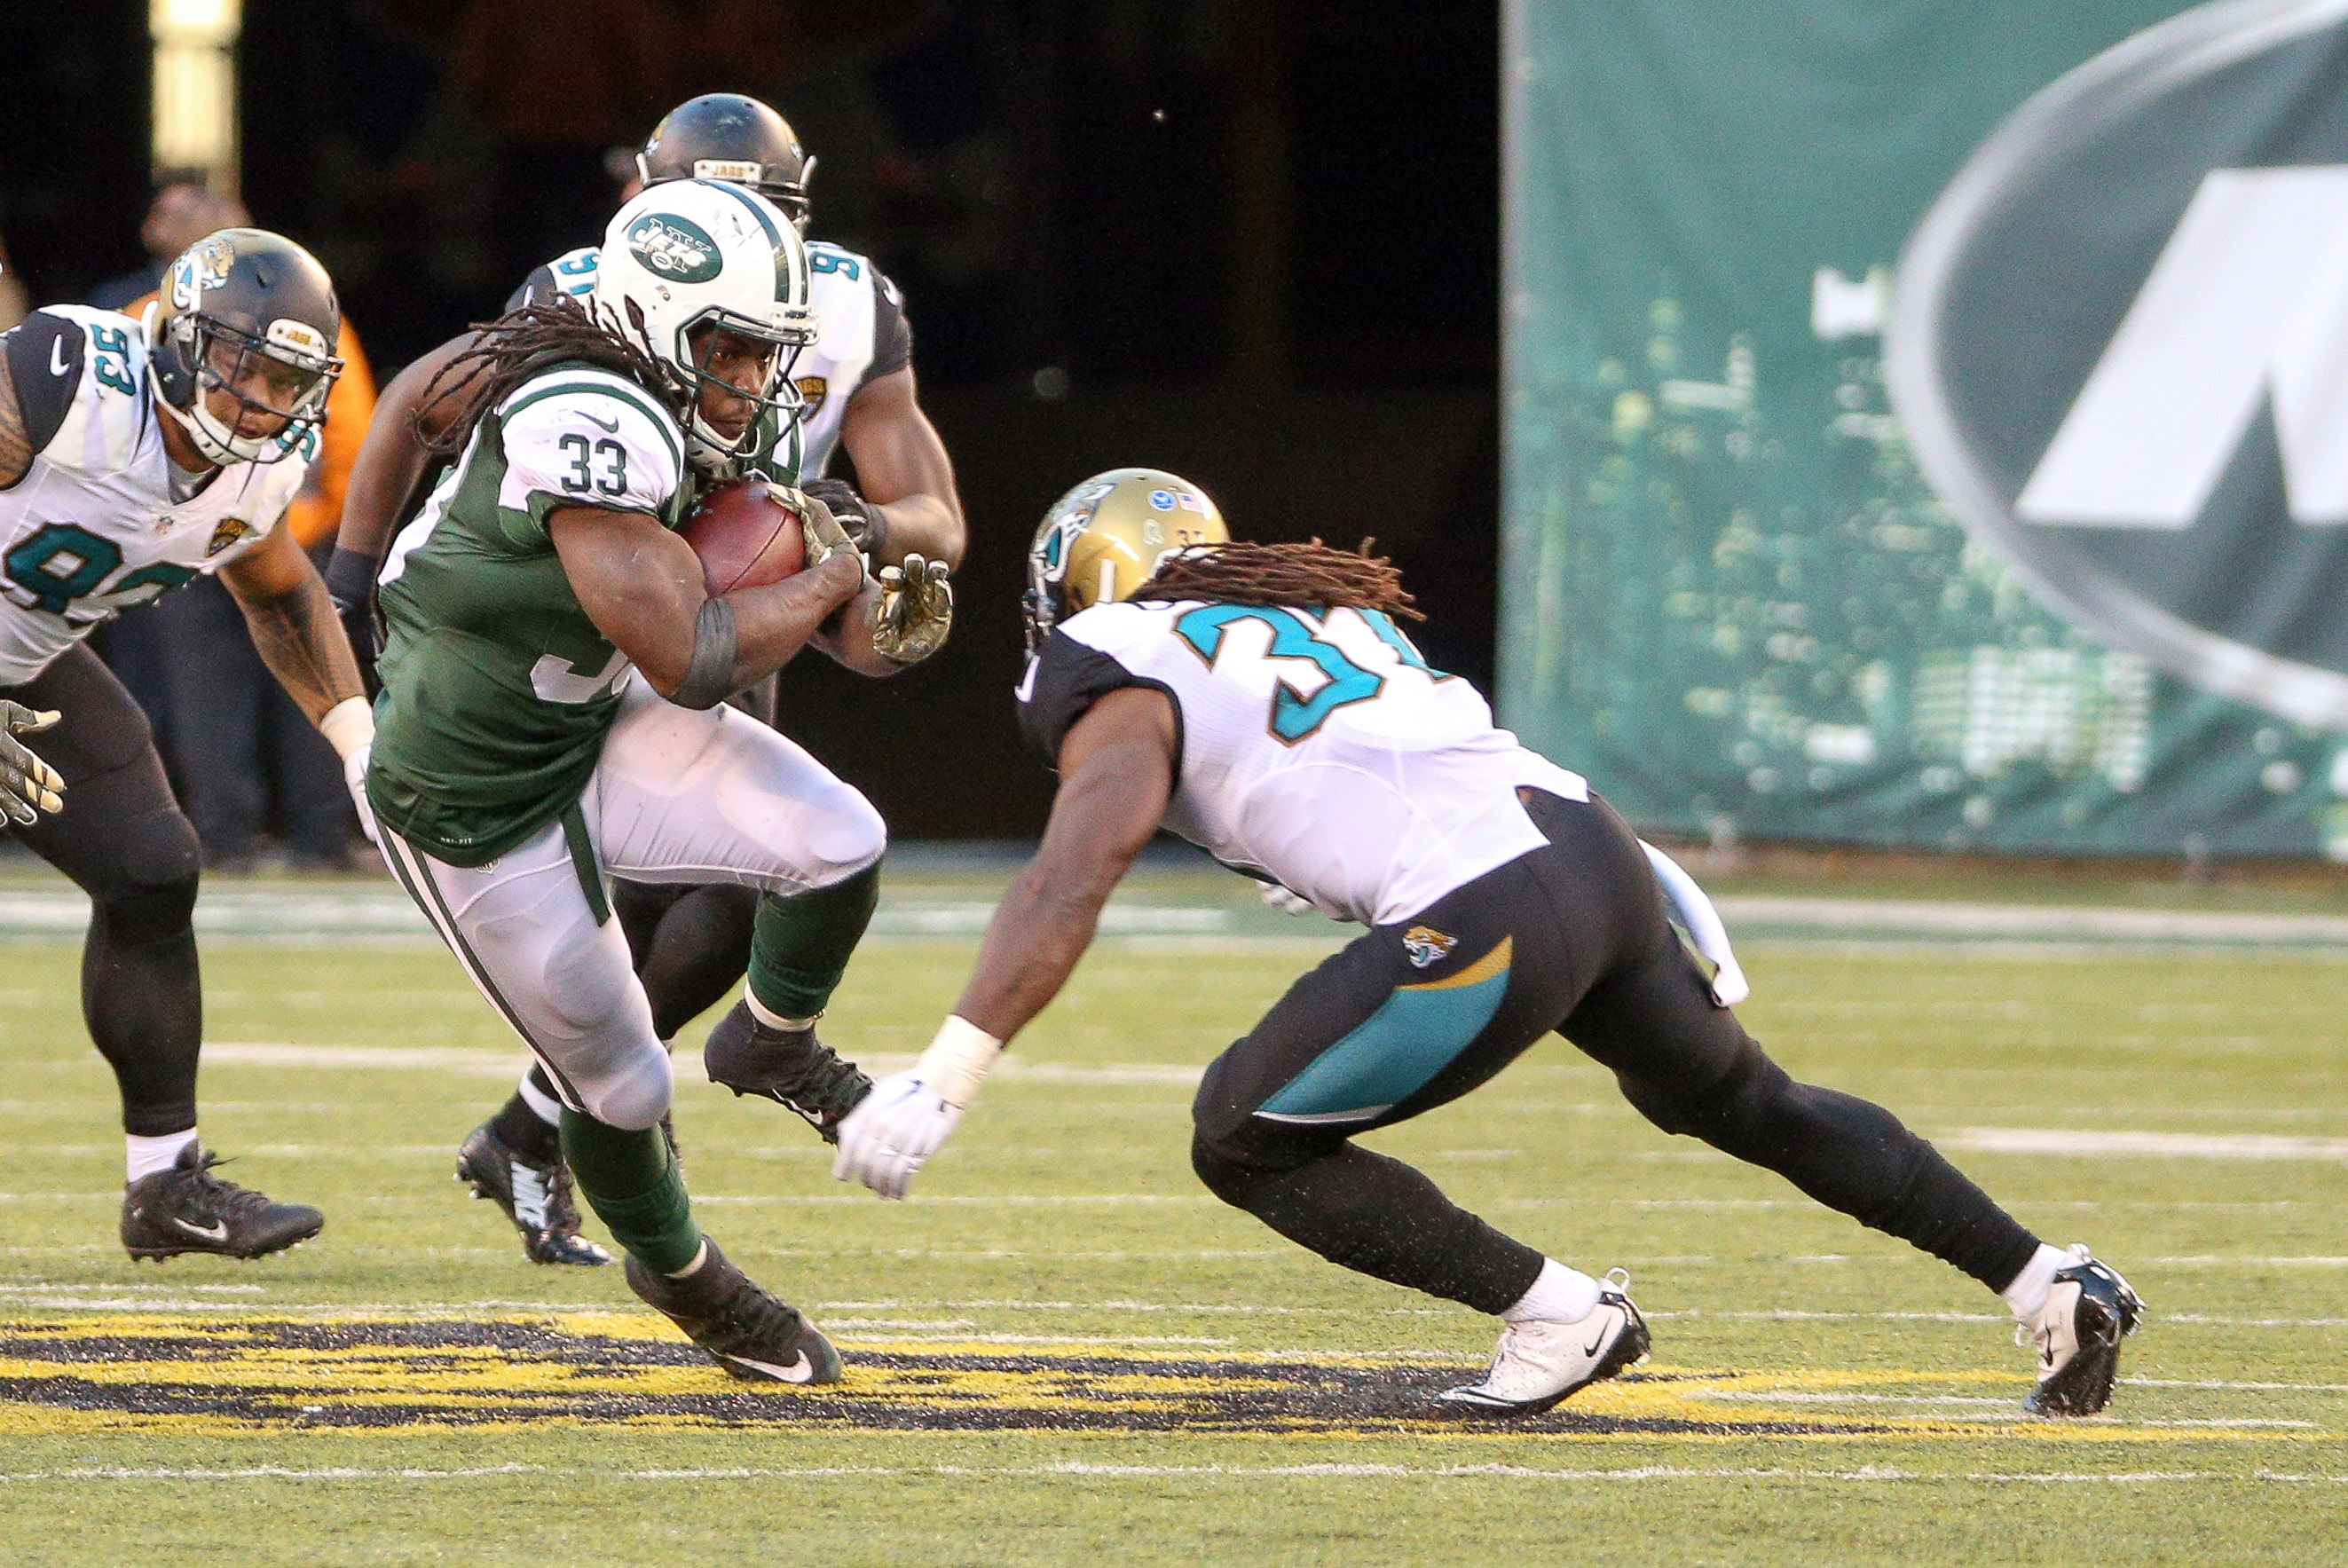 Fantasy football start/sit, Week 10: Chris Ivory looks like a strong play